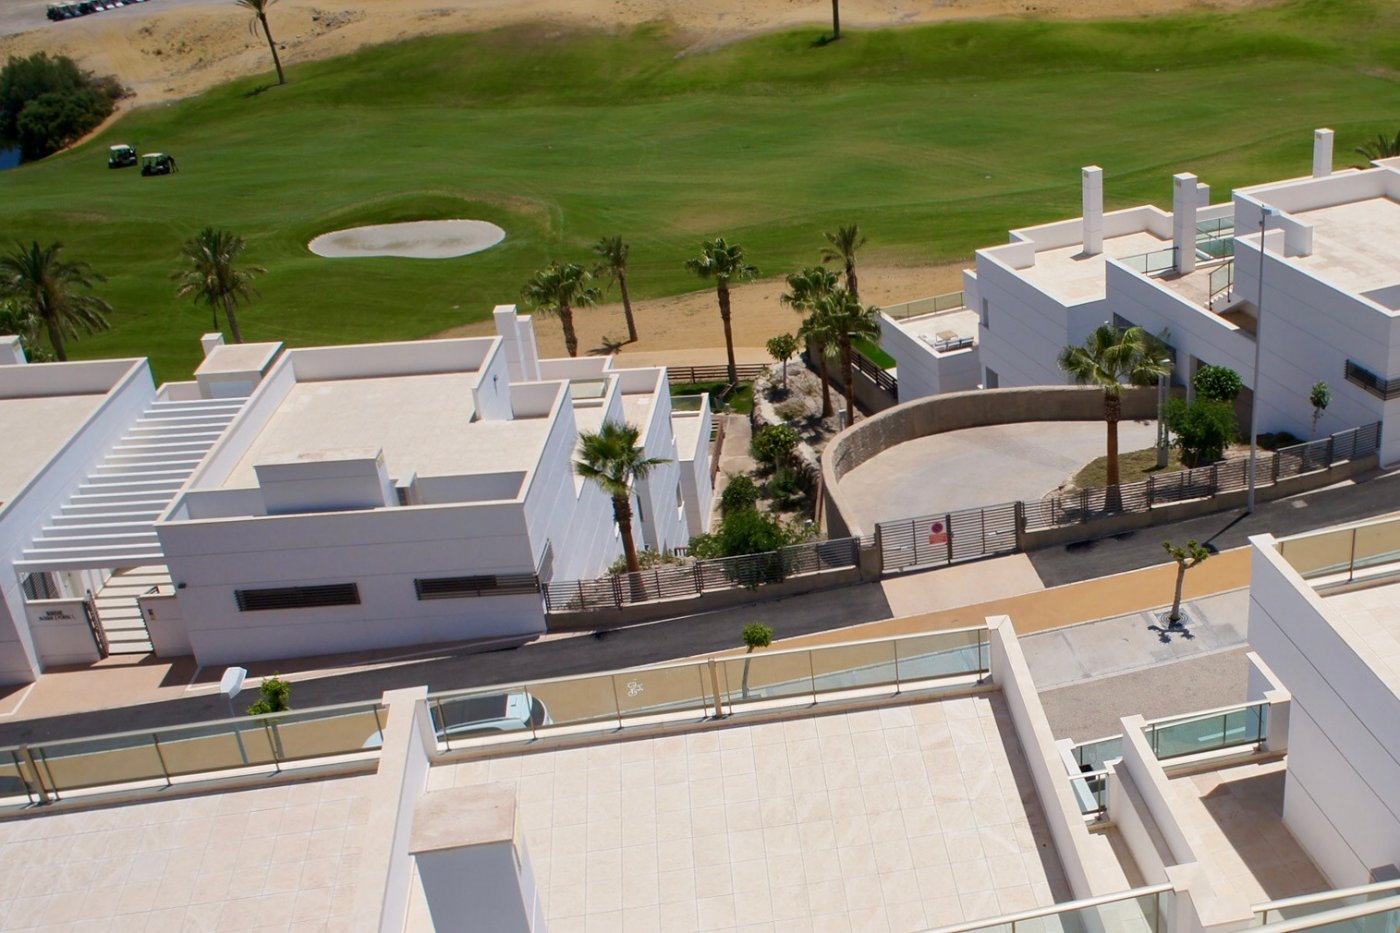 Gallery Image 10 of Big south facing 3 bed, 2 bath apartment with lovely views and 75 m2 terrassesolarium.